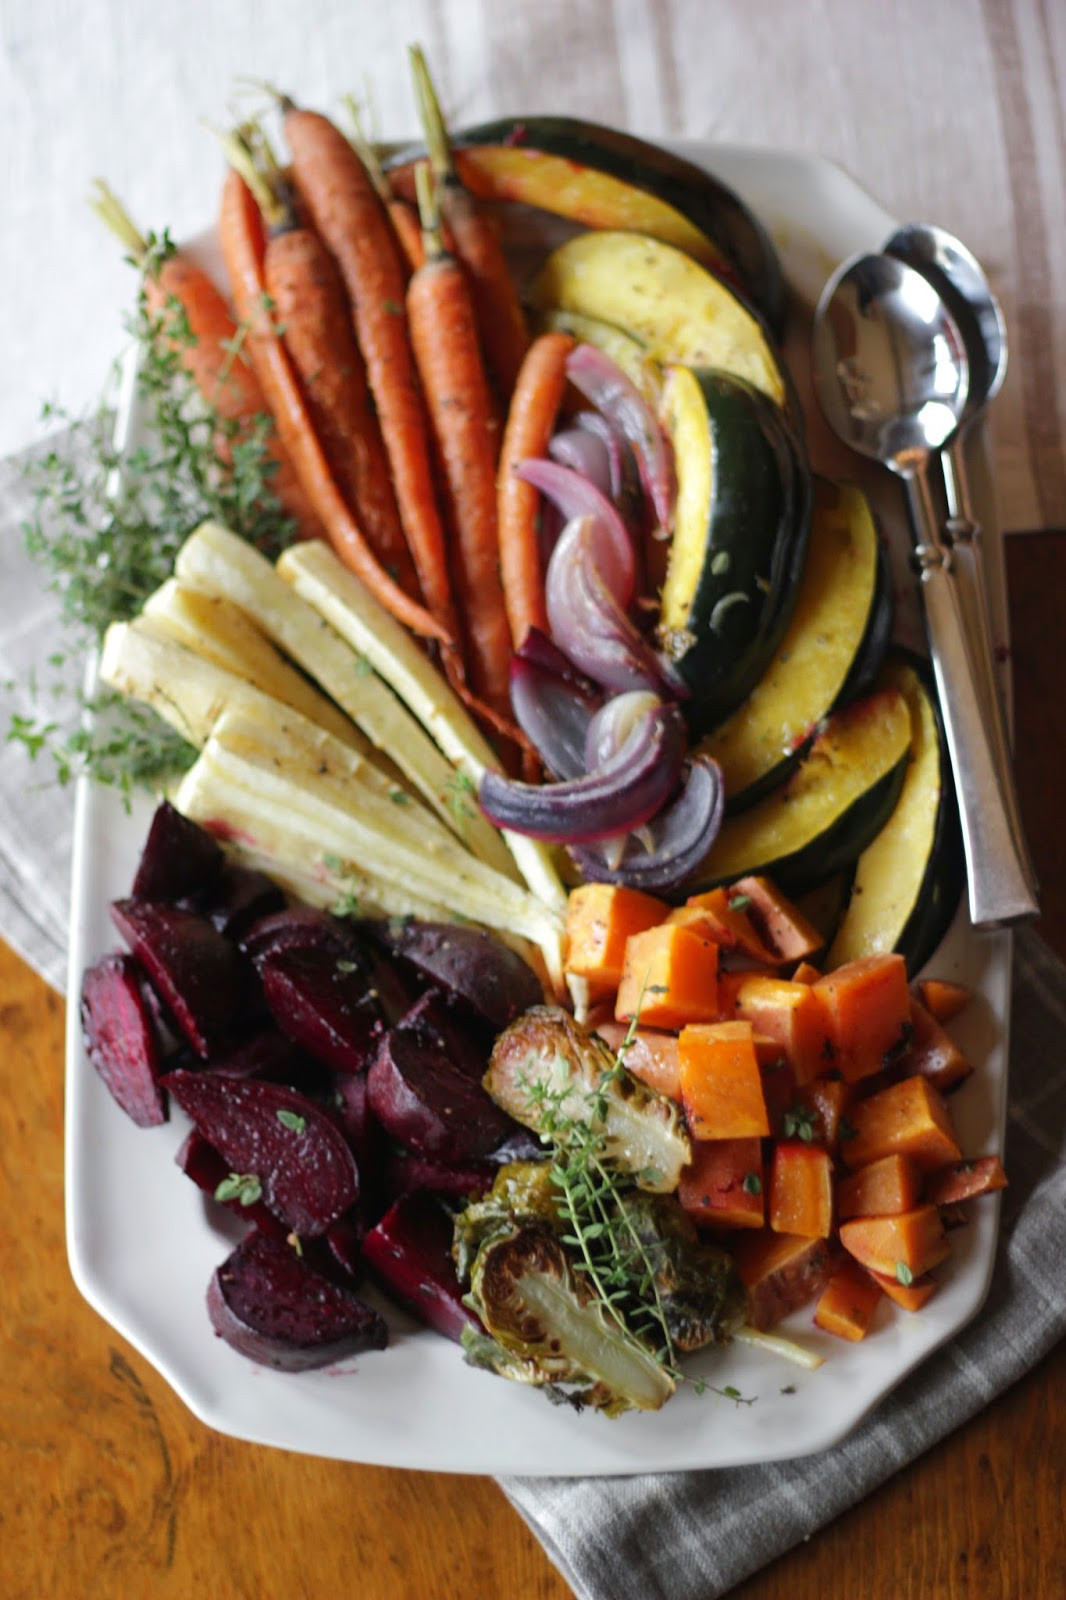 Thanksgiving Roasted Vegetables  Jenny Steffens Hobick Roasted Root Ve able Platter with